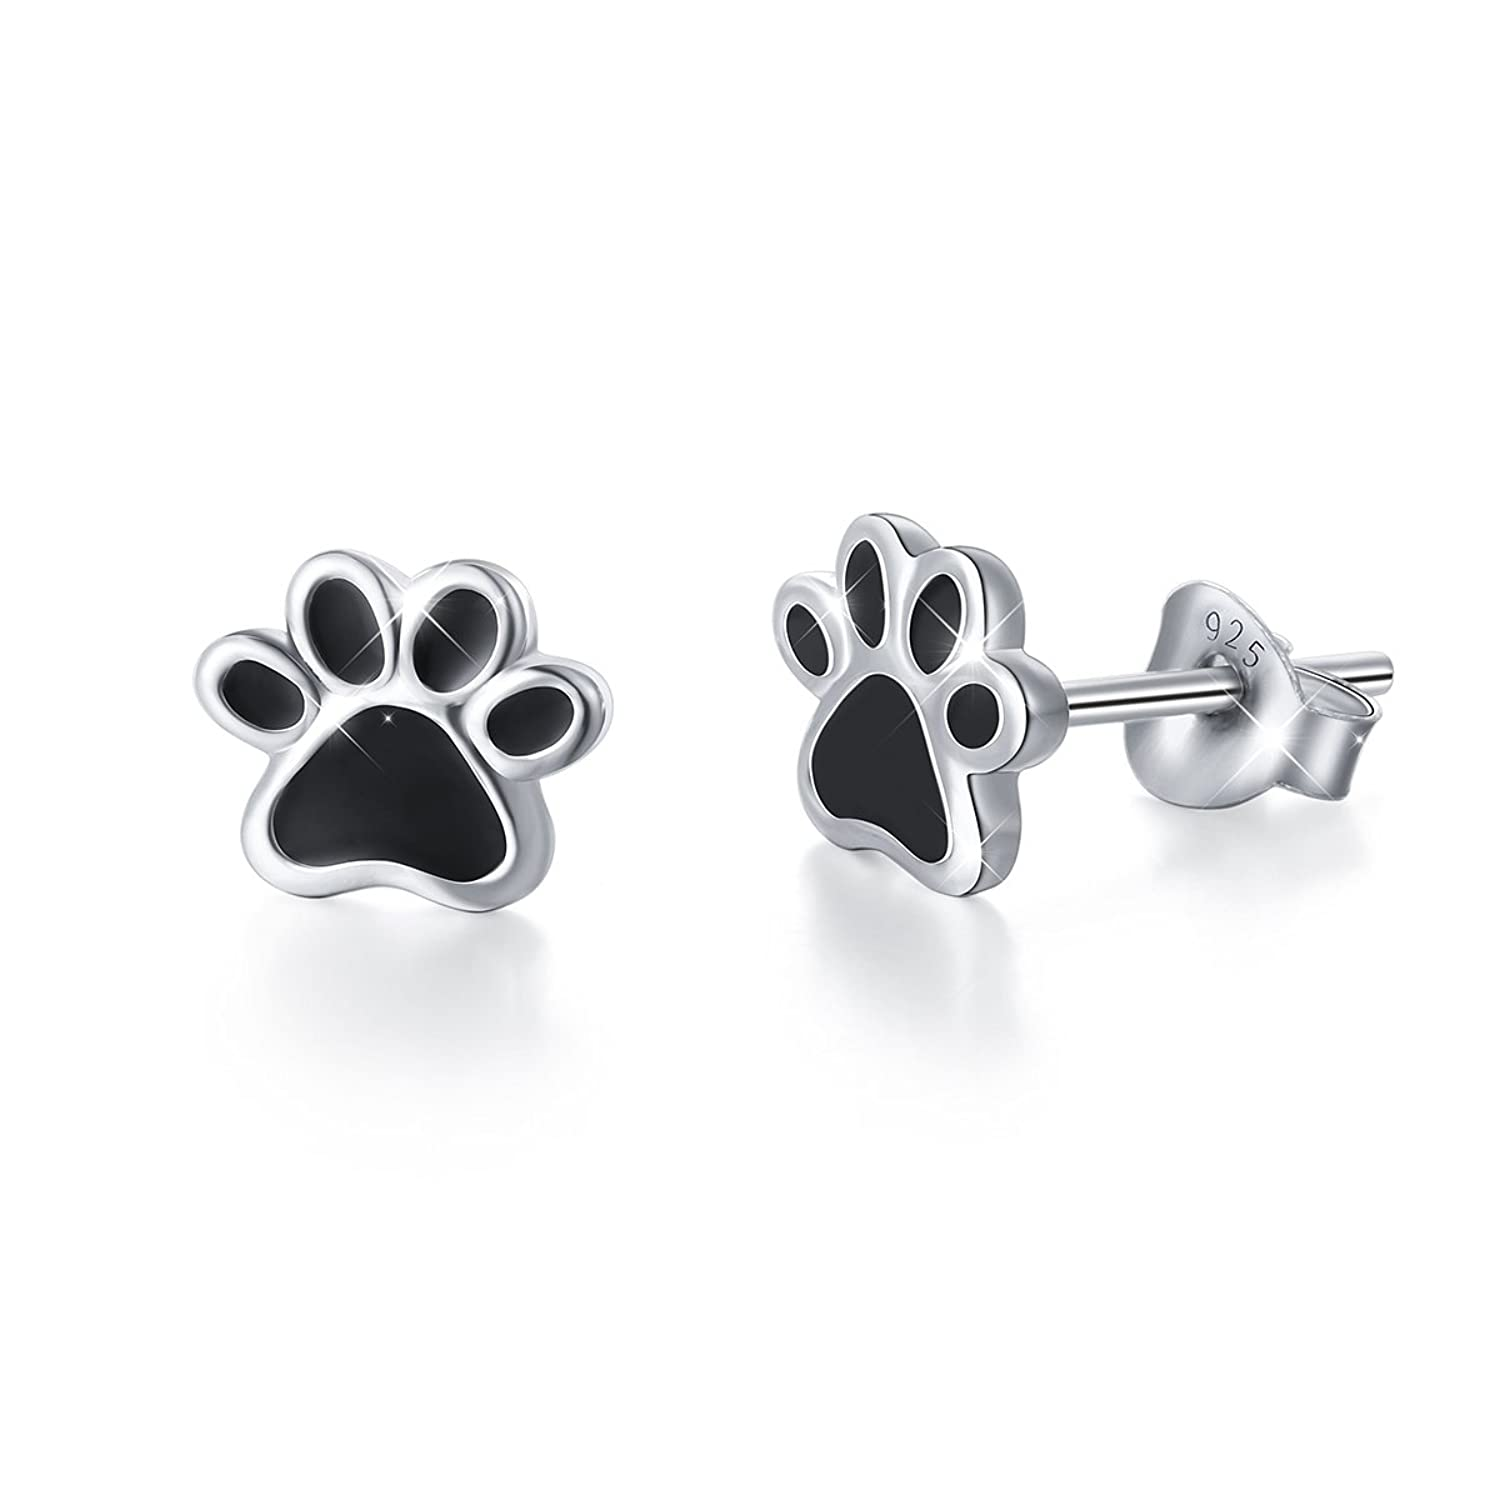 statement product ear cute gifts for women and cat dog fashion paw stud earrings jewelry